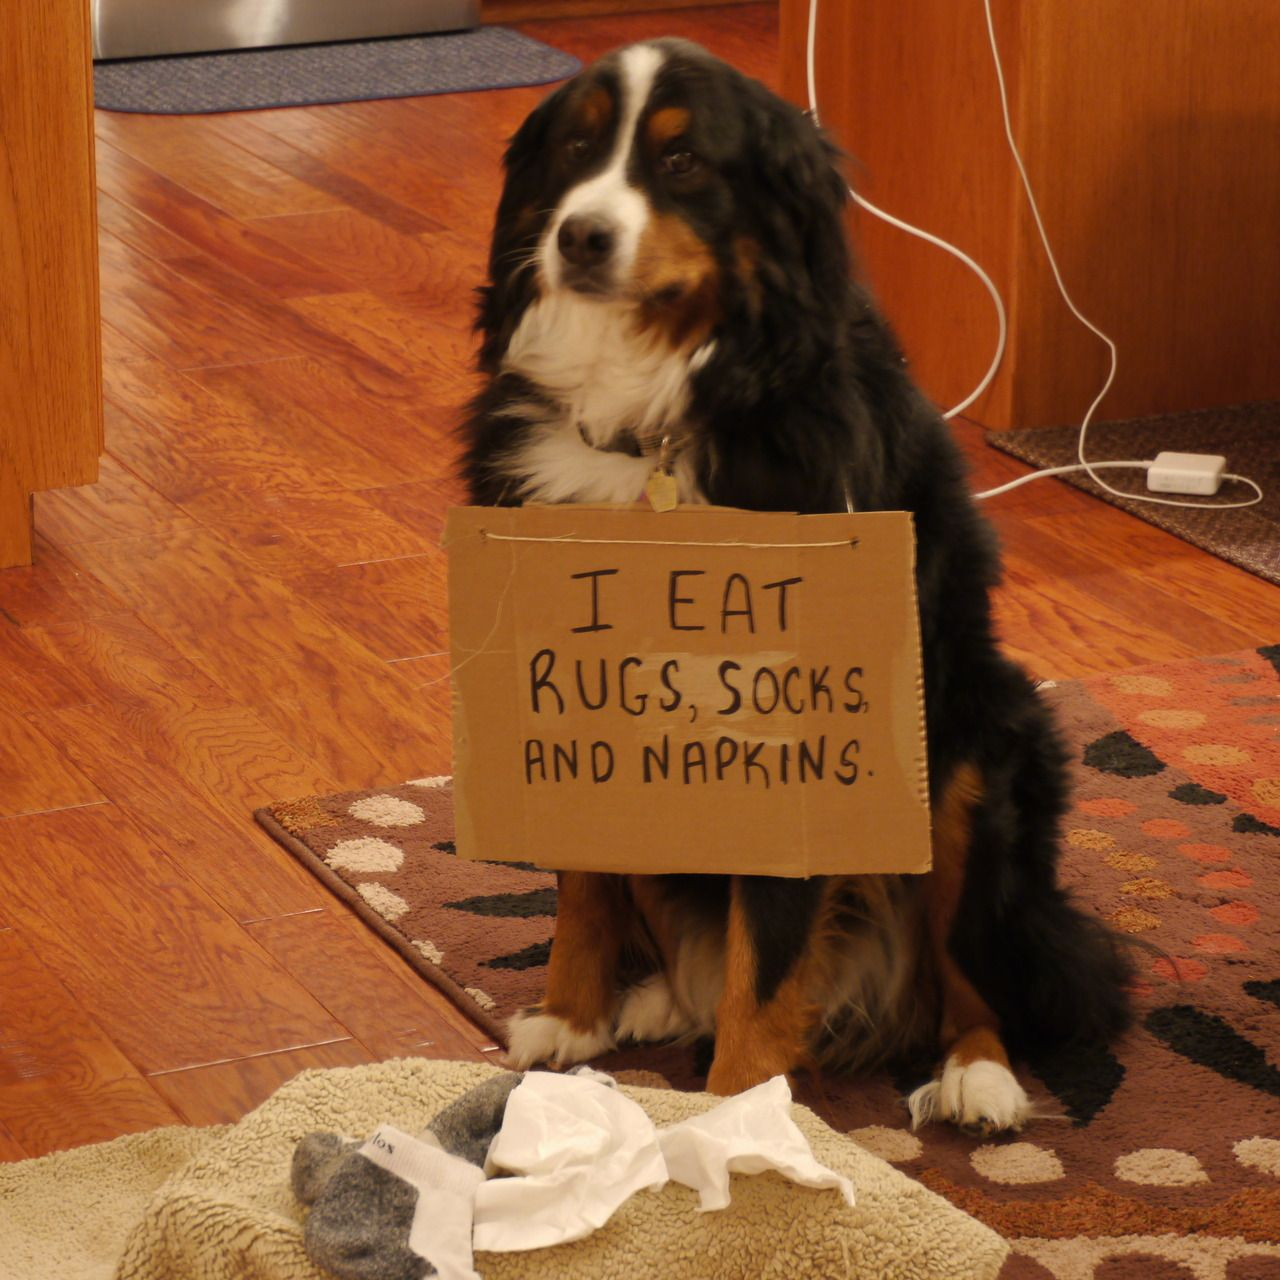 Dog Ate Some Rug: I Eat Rugs, Socks And Napkins.